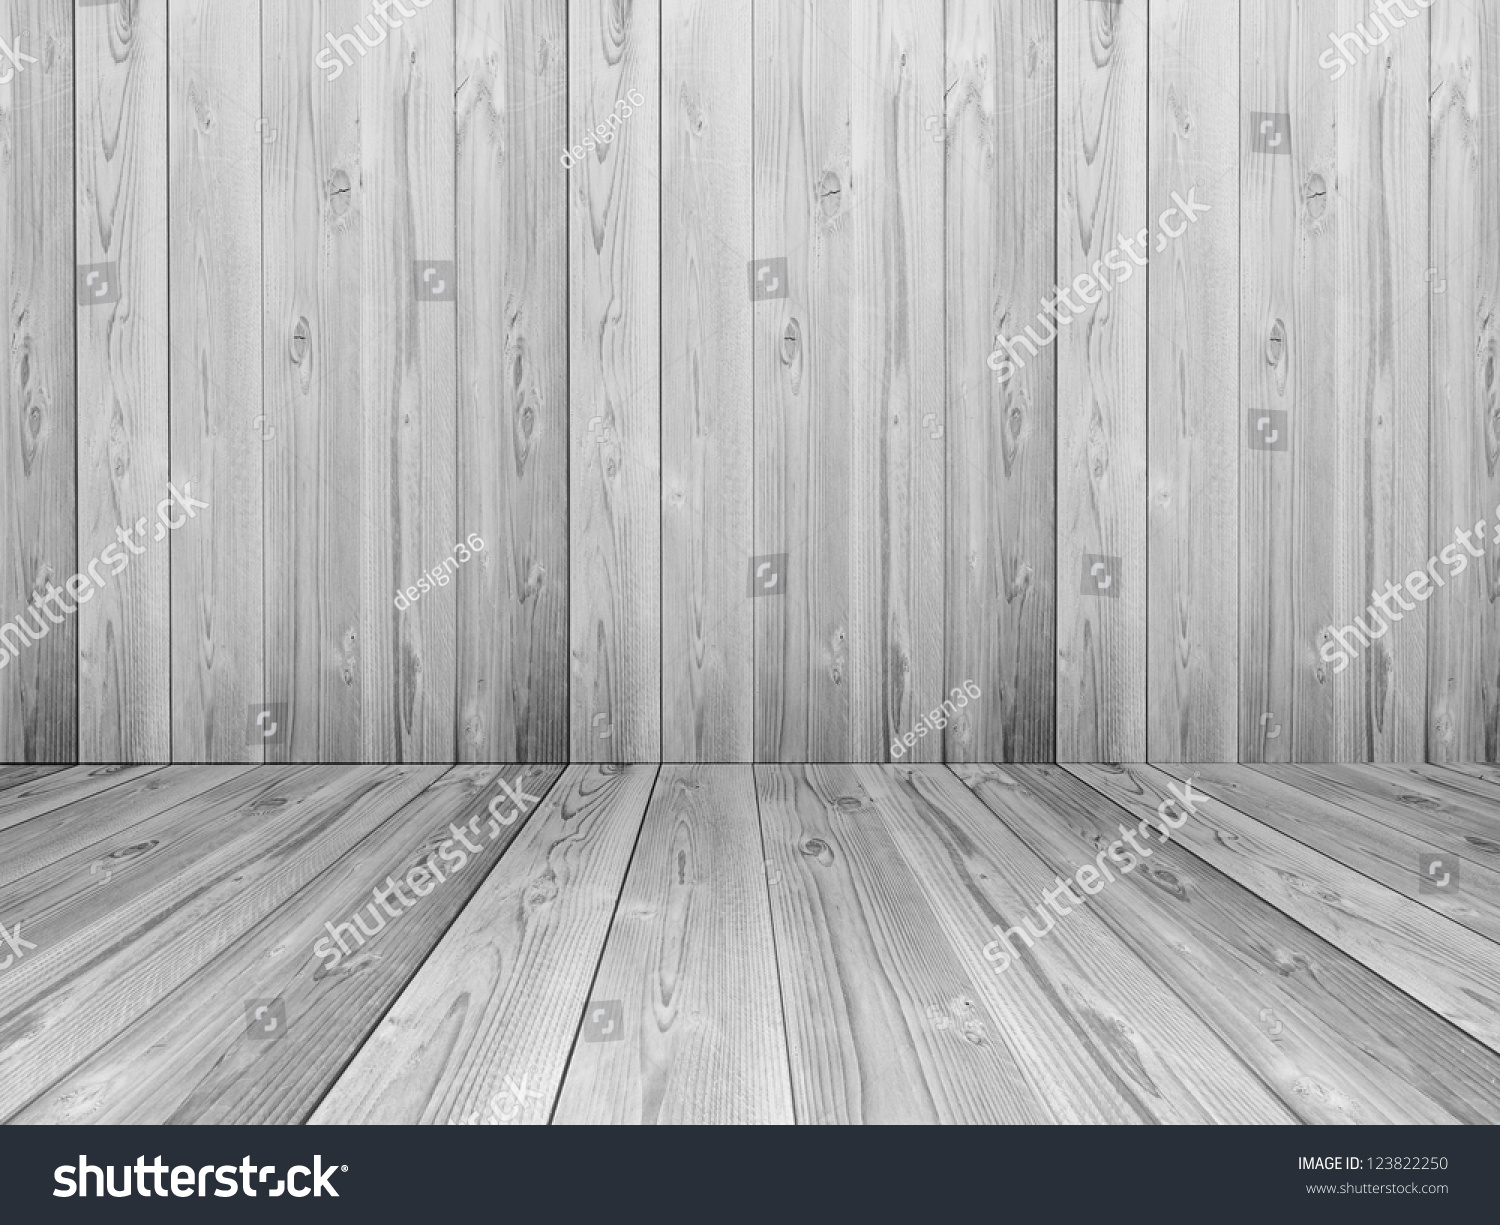 Old vintage white natural wood or wooden texture background or - Vintage Or Grungy White Background Of Natural Wood Or Wooden Old Texture As A Retro Pattern